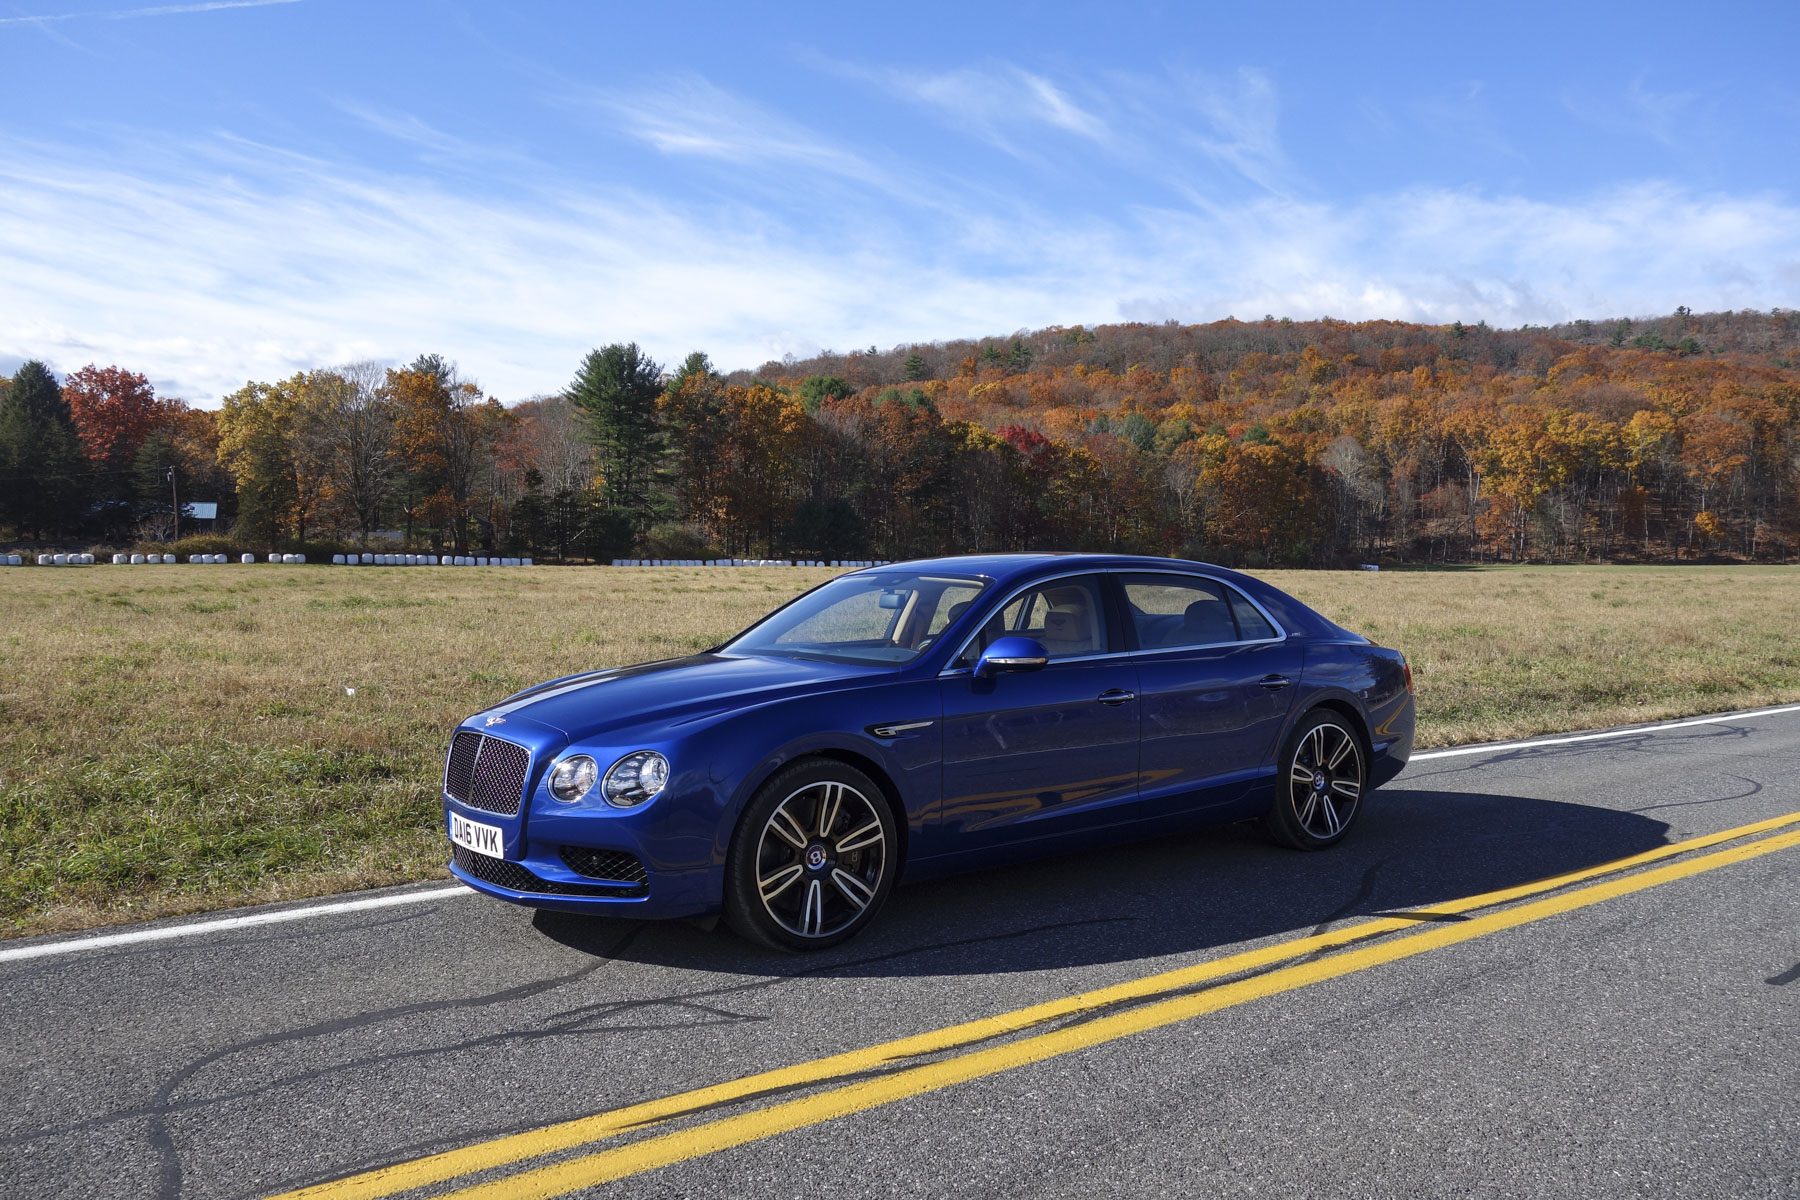 The Best to Impress: Bentley Flying Spur S